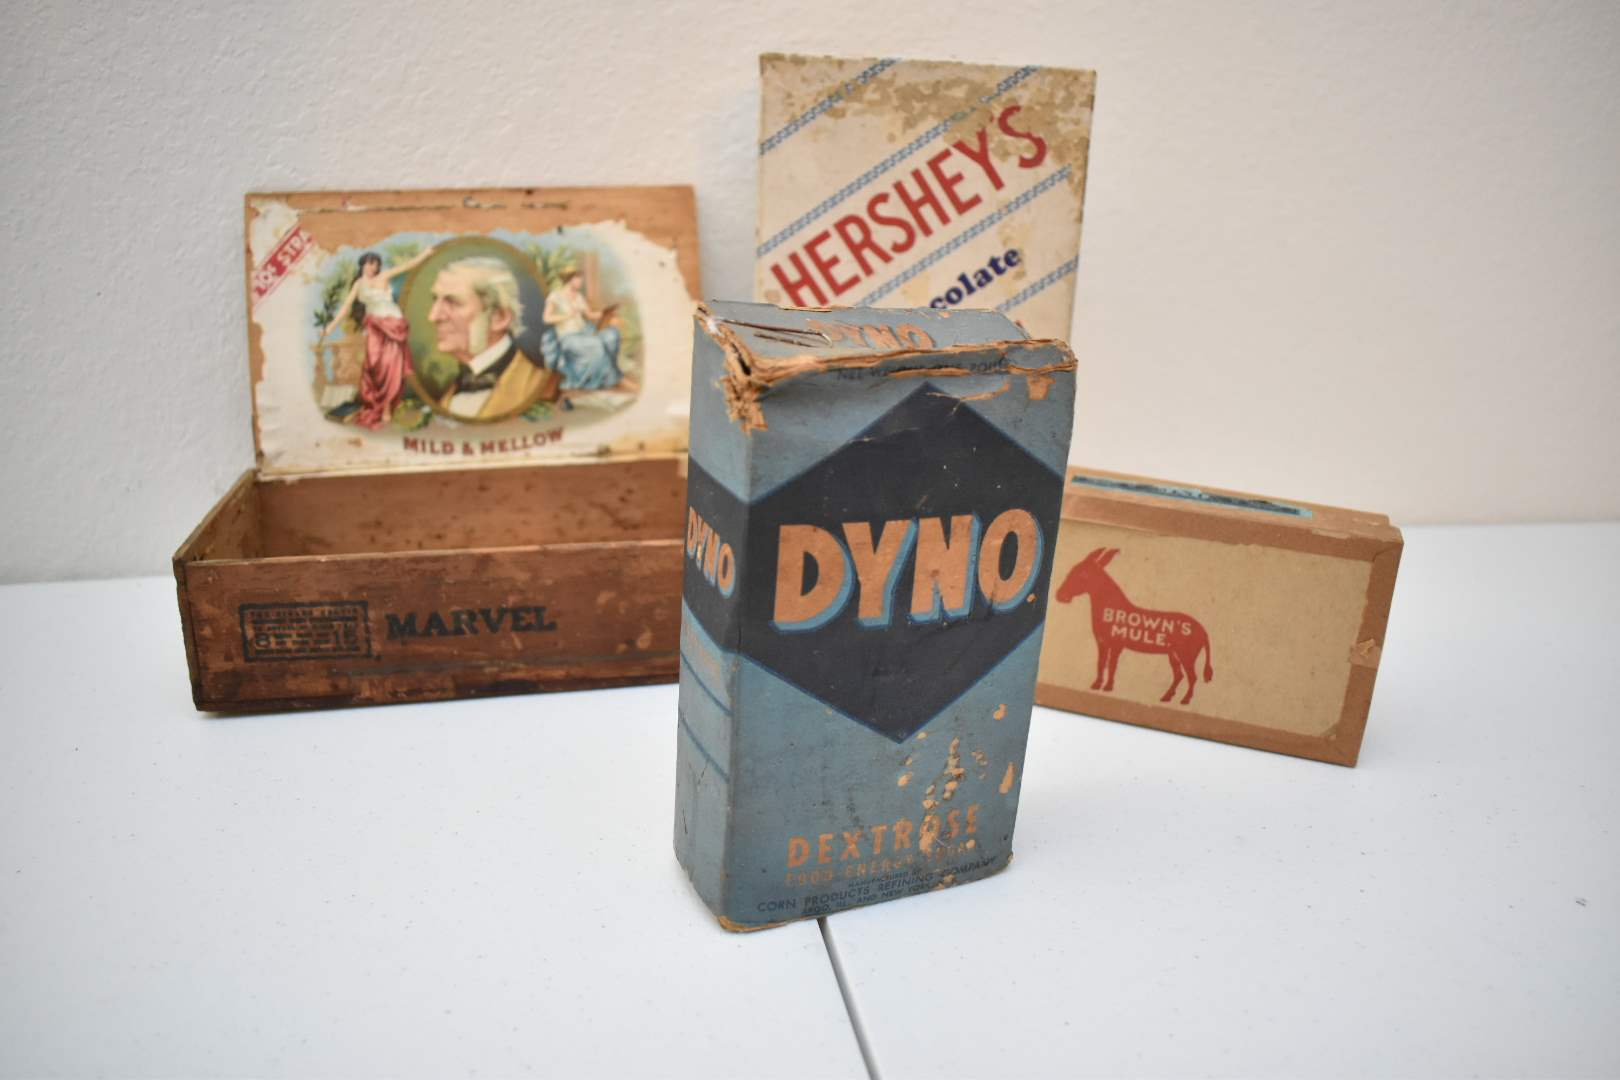 Antique Empty Cigar Boxes, Hershey's Box, and Almost-Full Dyno